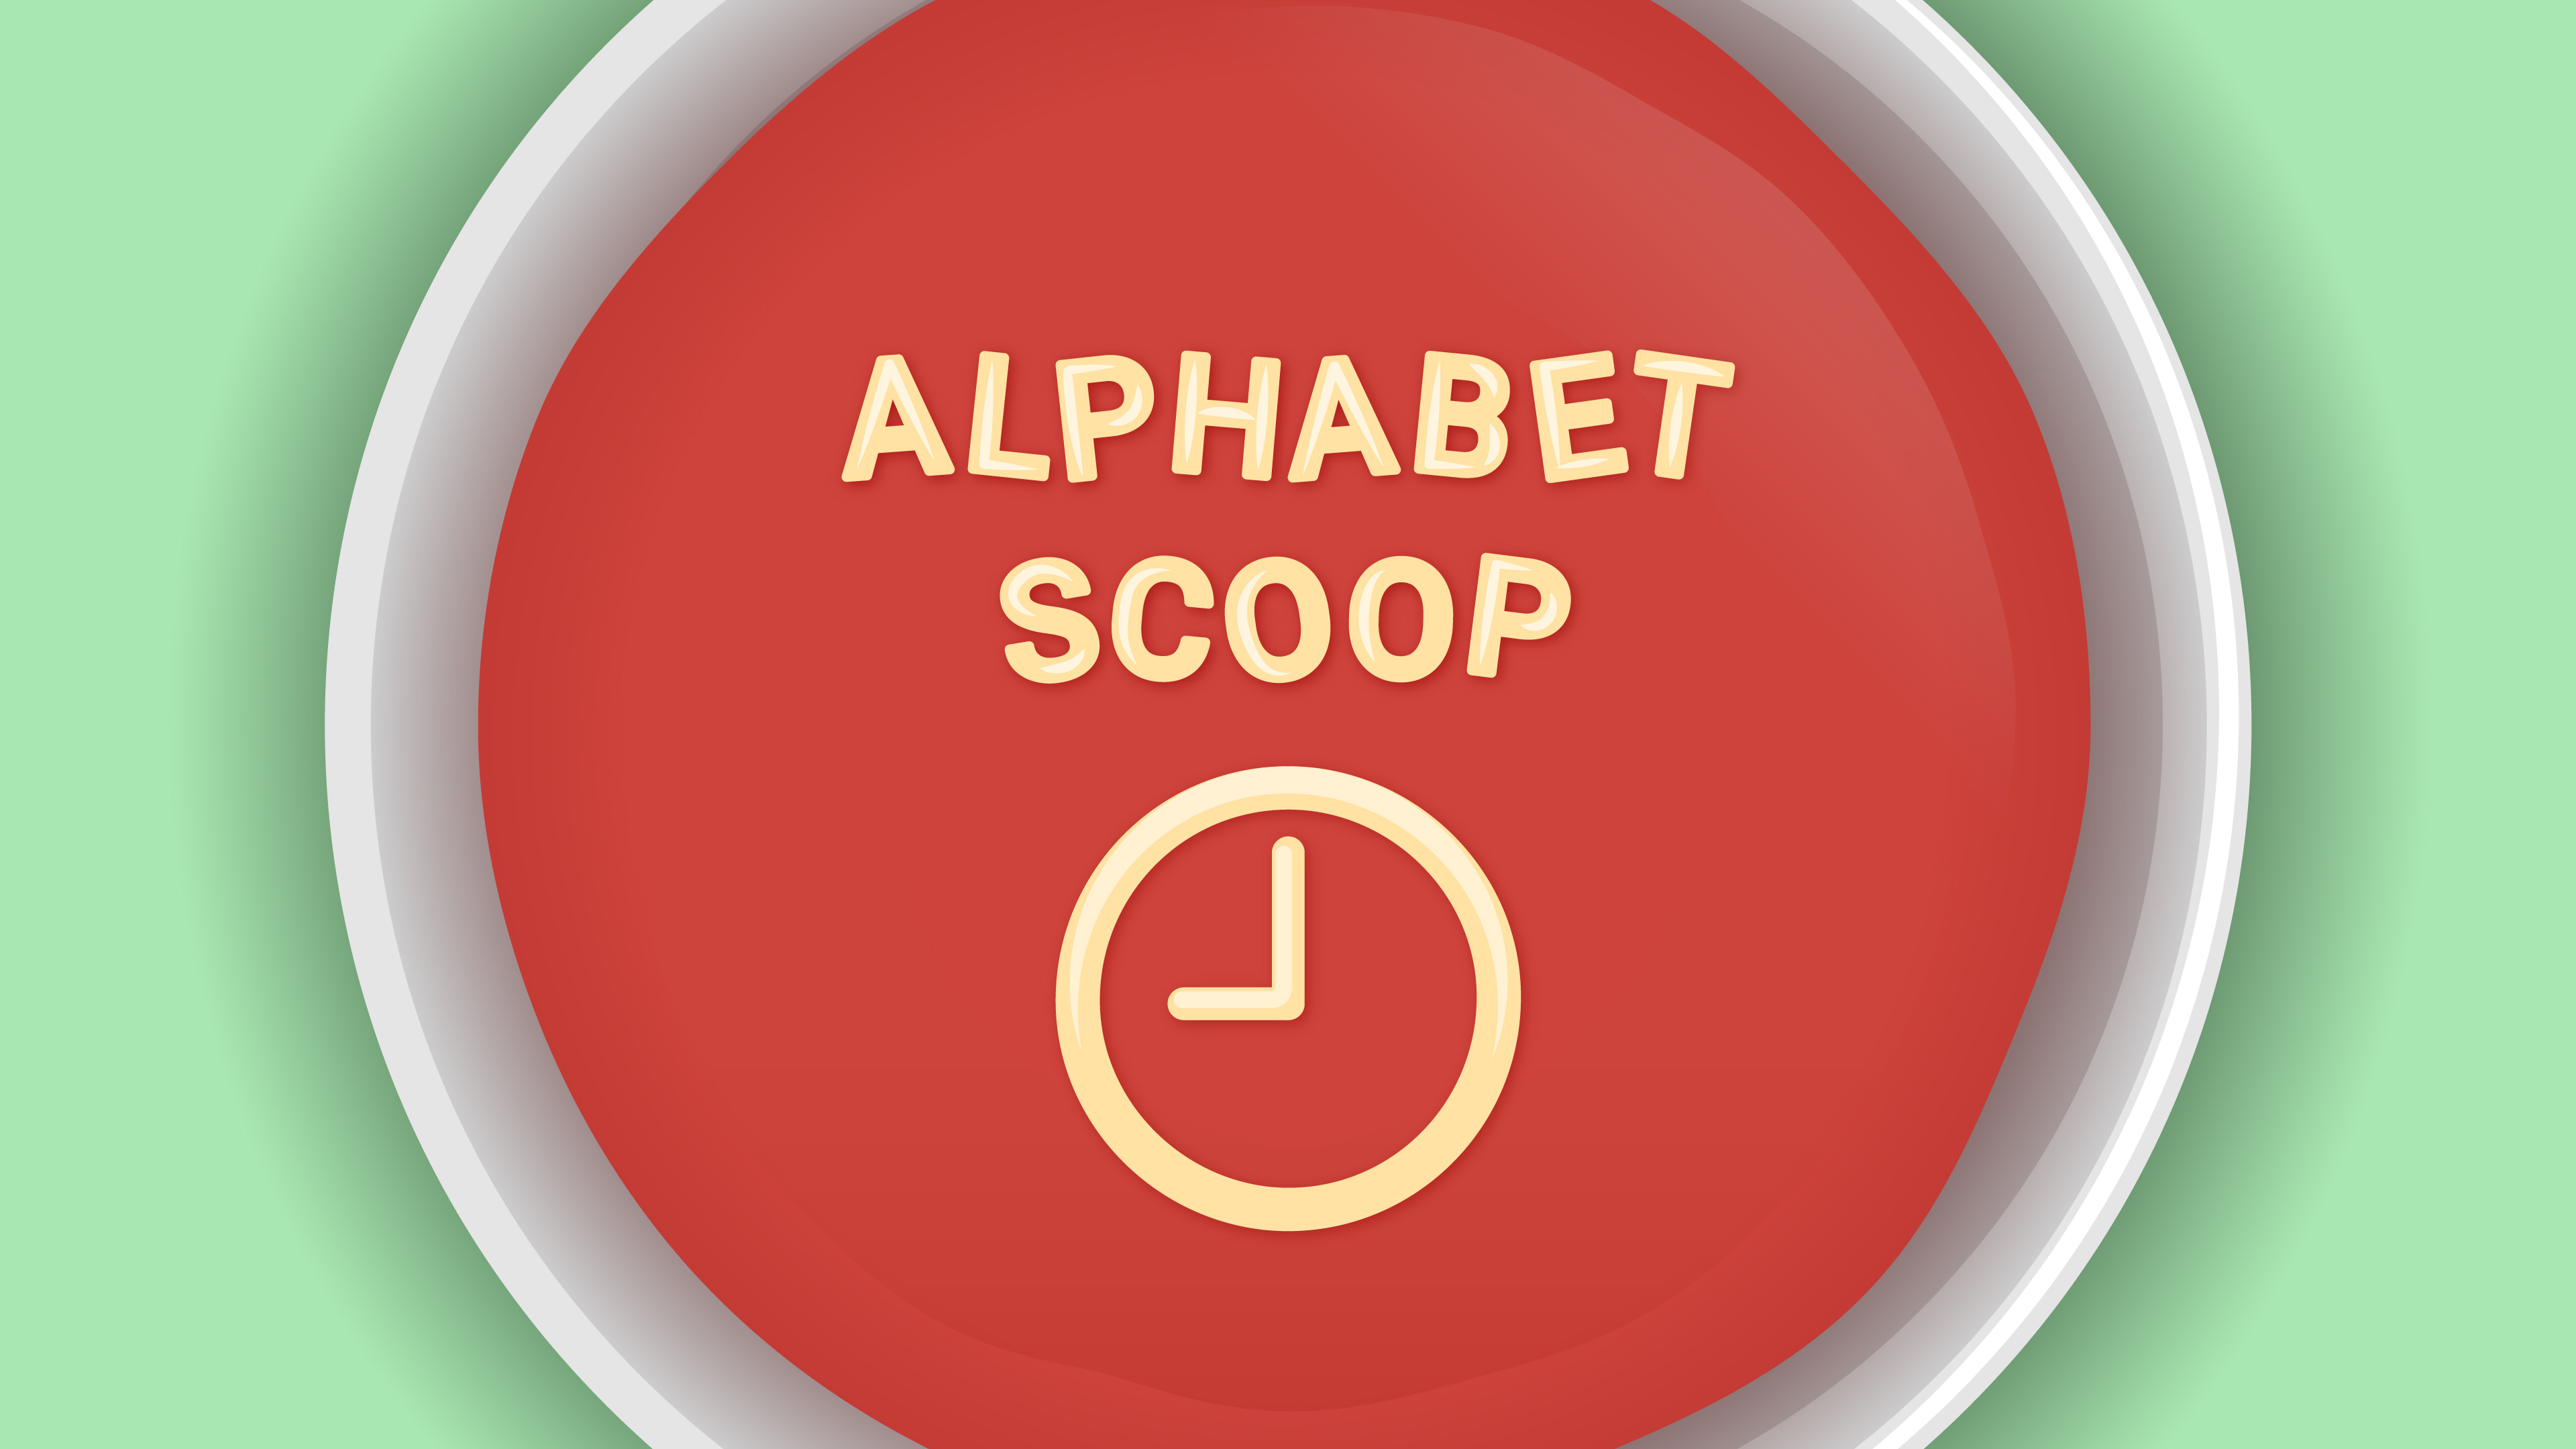 Alphabet Scoop 047: Stadia pricing rumors, YouTube show cuts, RIP entry-level Pixel Slate?